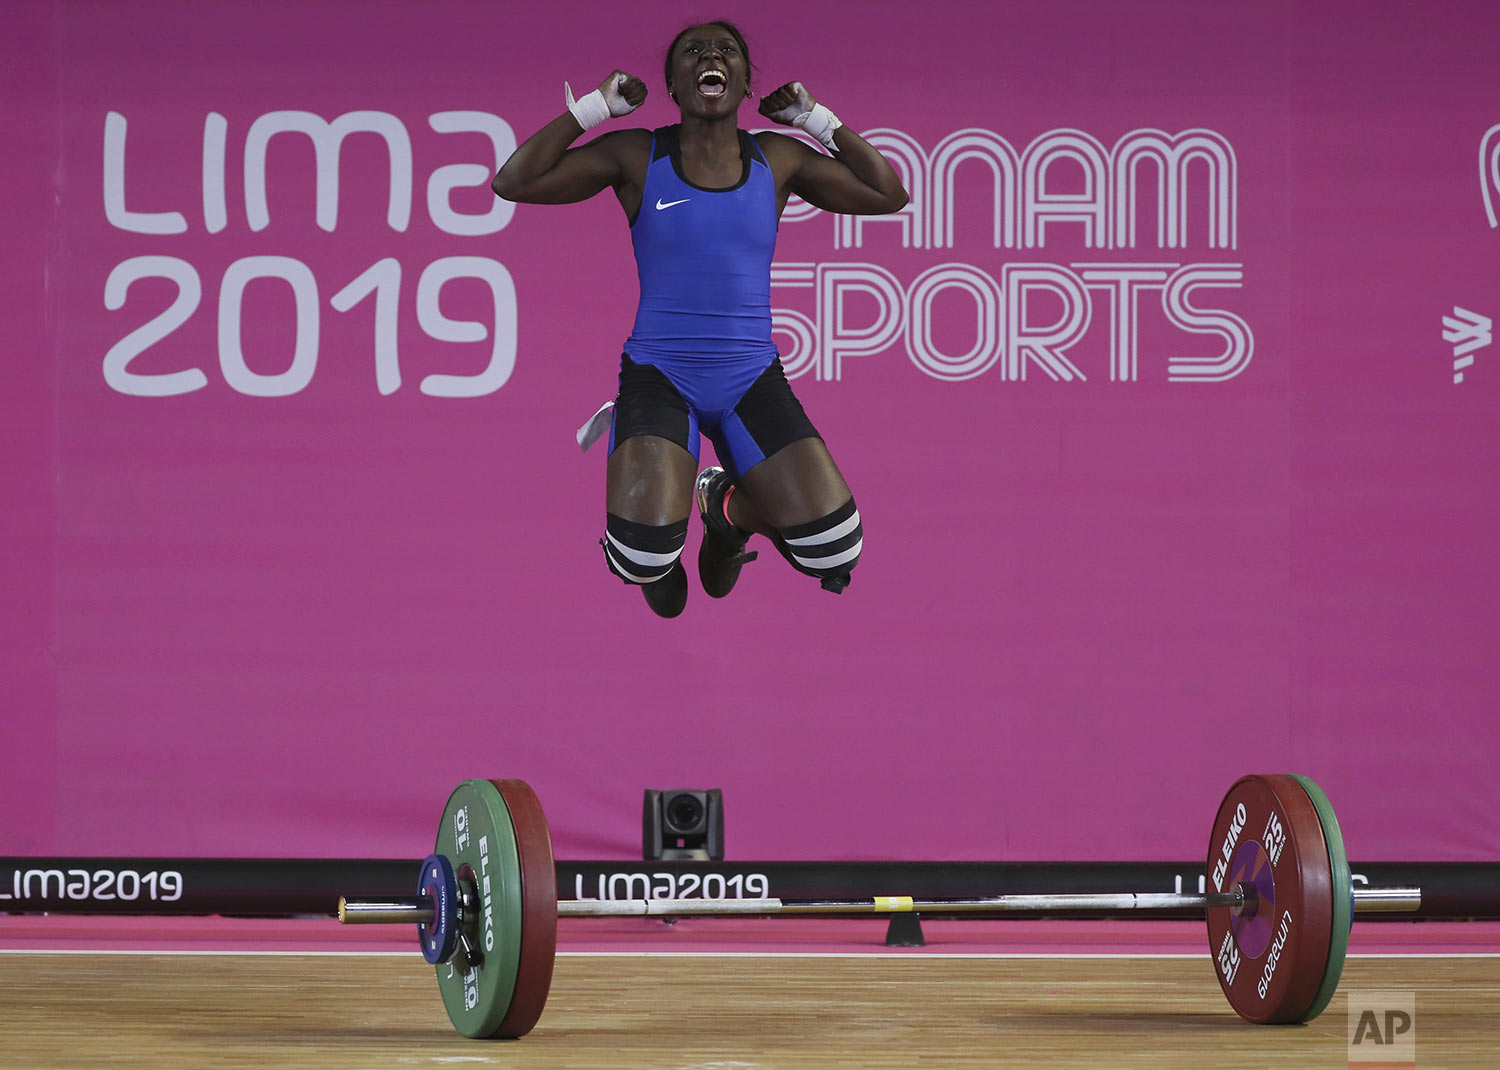 Yenni Sinisterra of Colombia celebrates after lifting 94 kg during the snatch women's weightlifting 55 kg event at the Pan American Games in Lima, Peru, Sunday, July 28, 2019. (AP Photo/Fernando Llano)